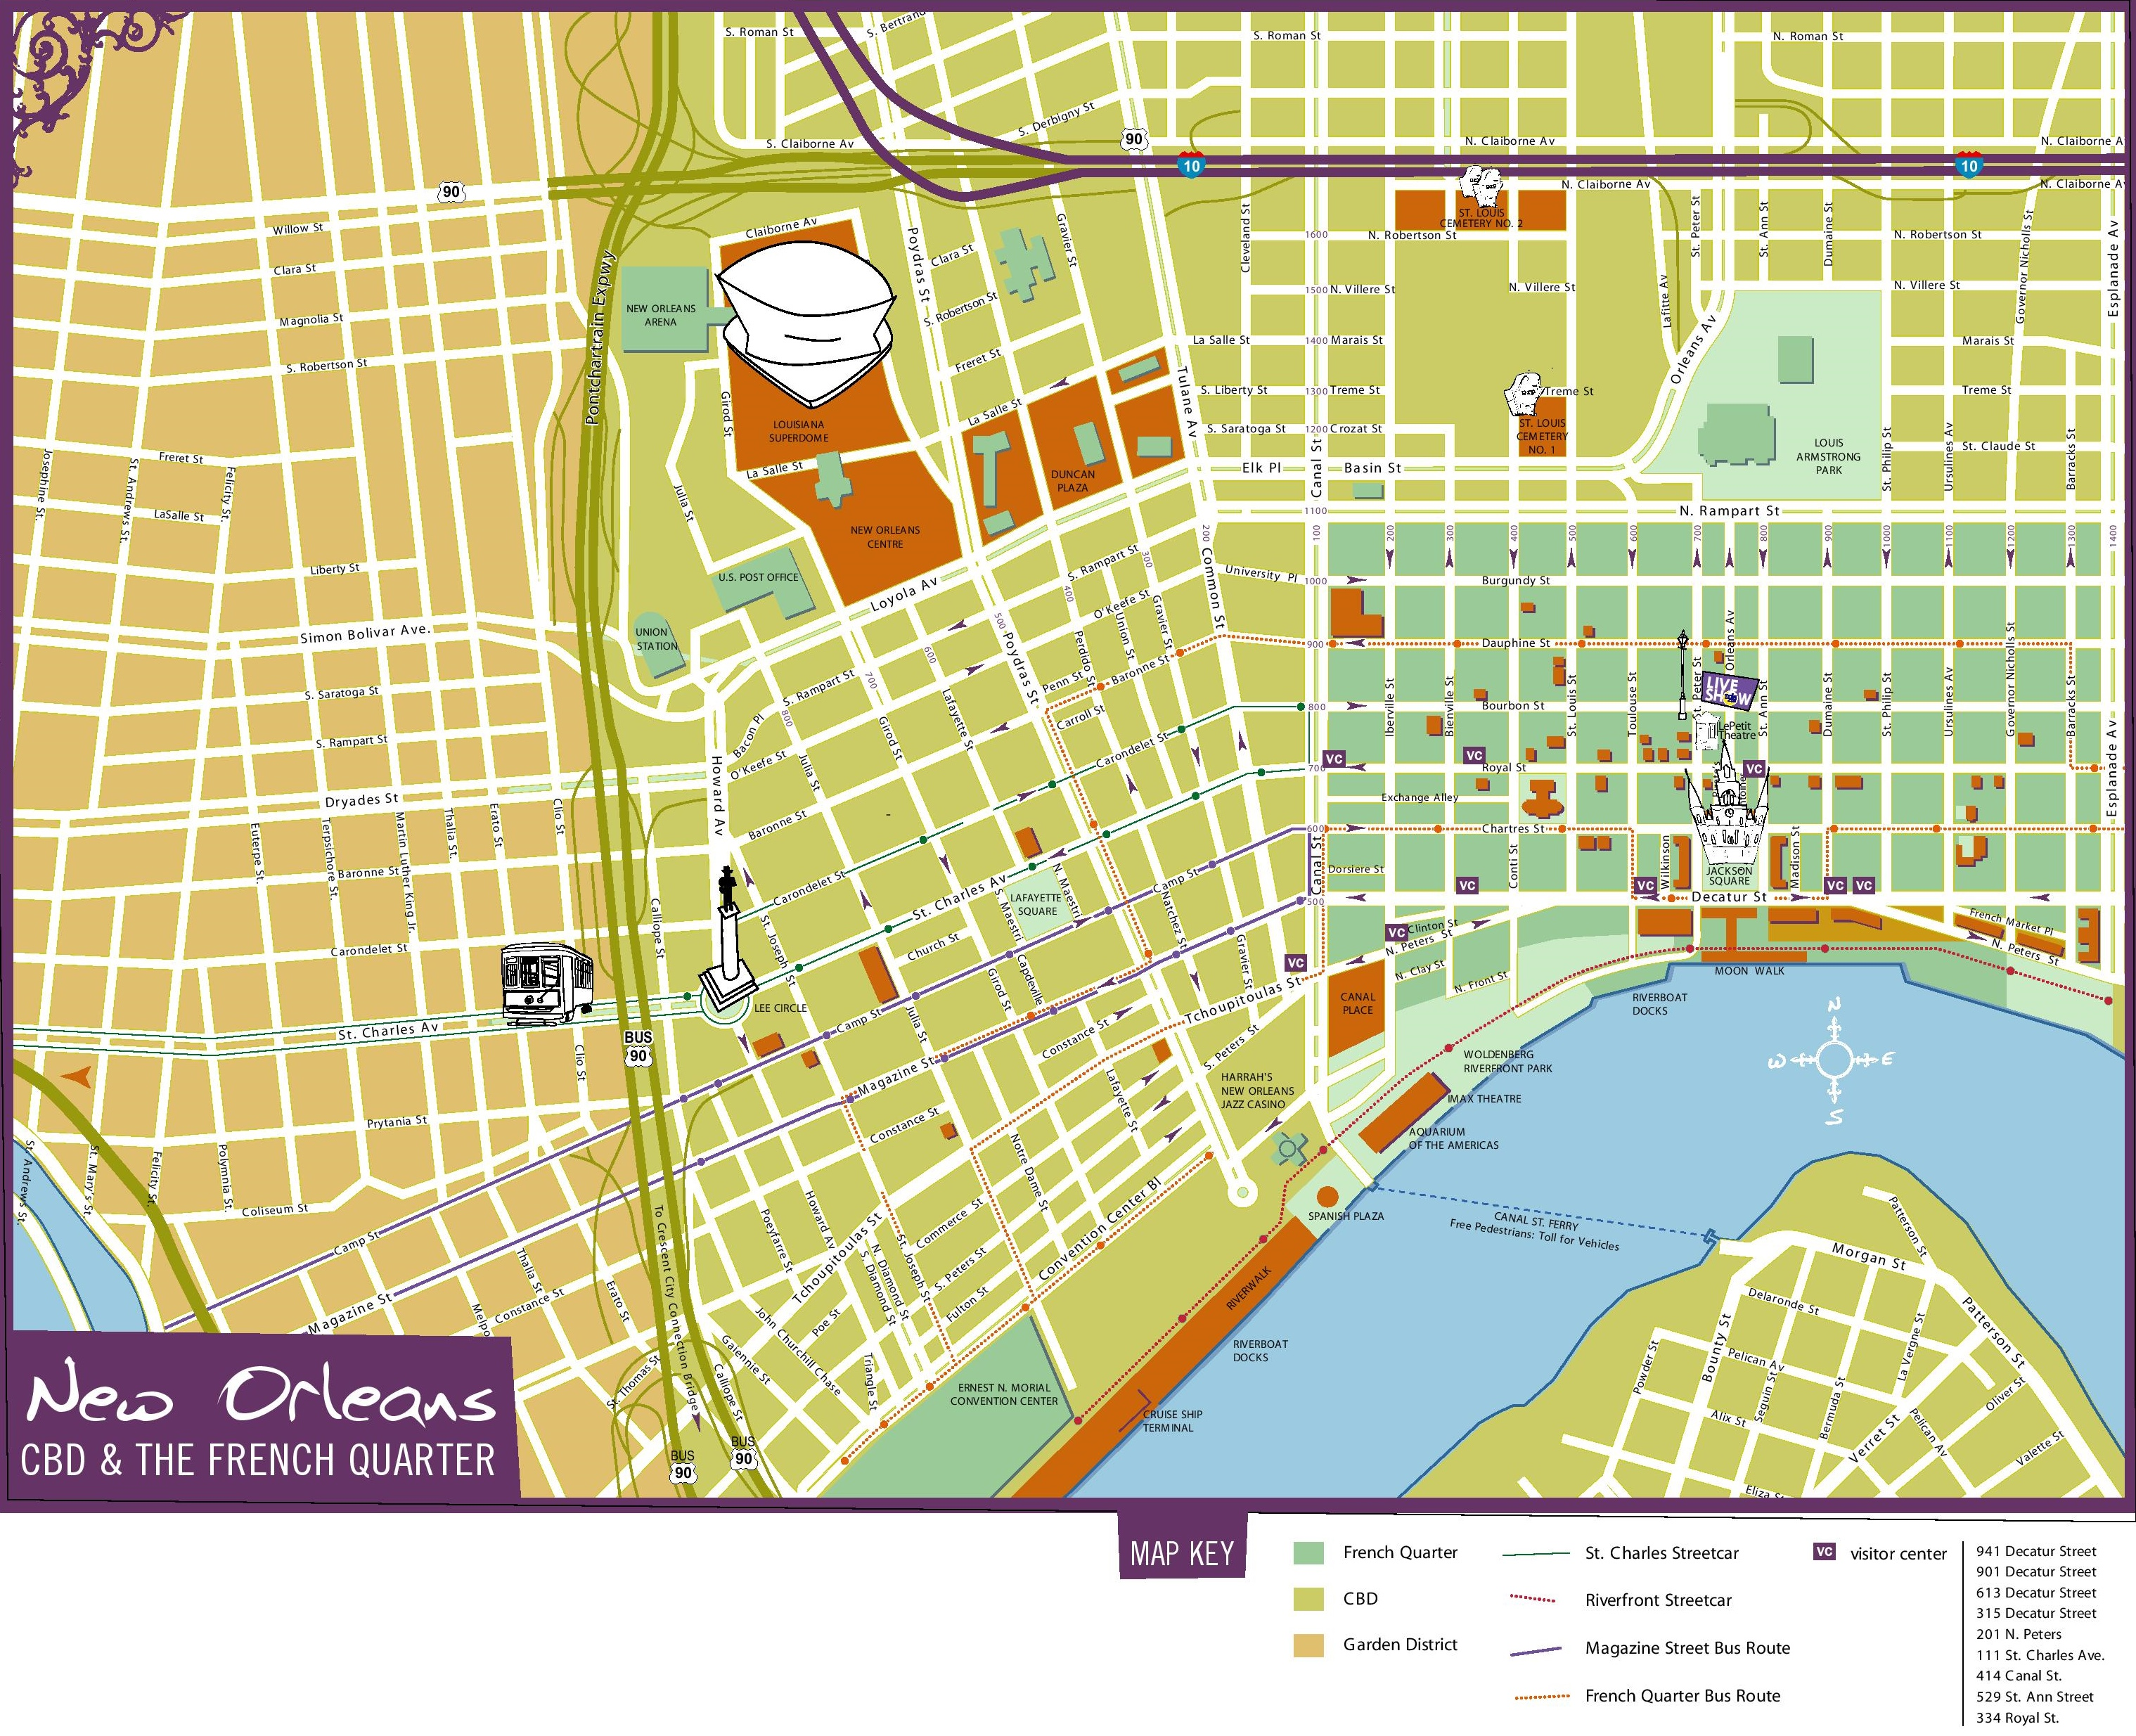 New Orleans Maps Louisiana US Maps Of New Orleans - New orleans usa map